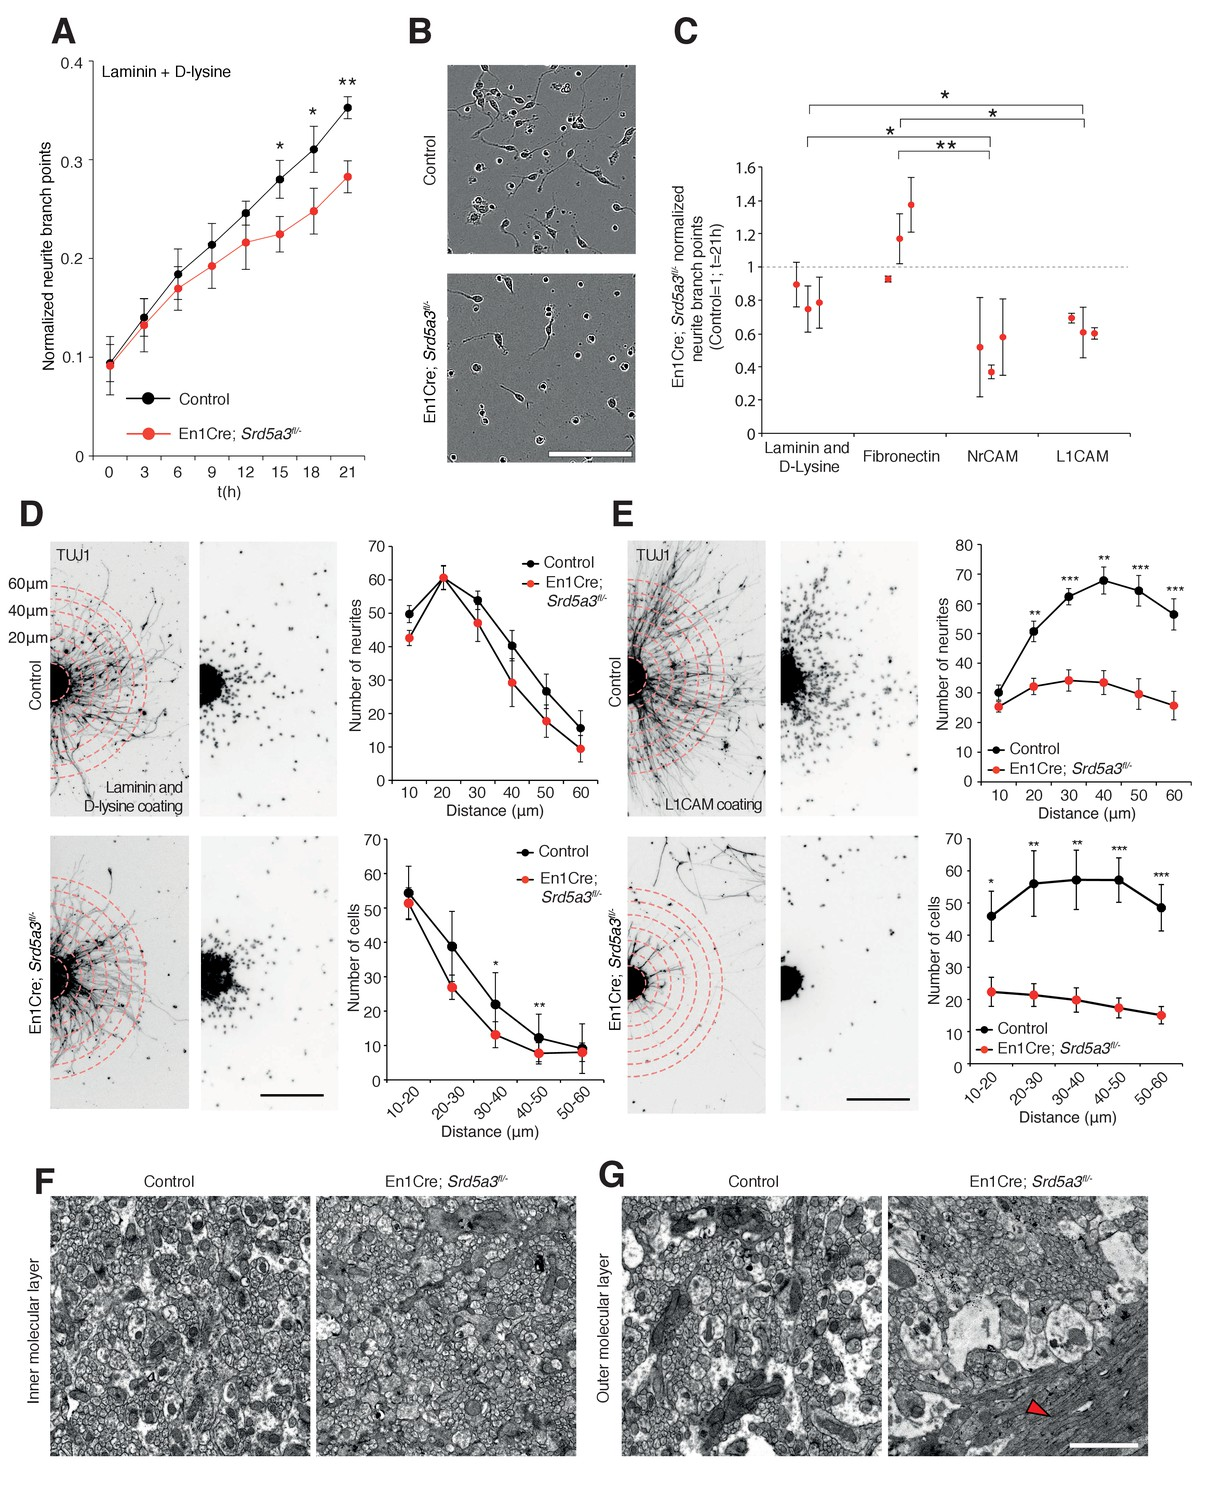 High N Glycan Multiplicity Is Critical For Neuronal Adhesion And Engine Diagram Additionally 2006 07 Honda Odyssey Left Driver Side Igsf Cam Dependent Neurite Dynamic Axon Orientation Defects In Srd5a3 Mutant Cerebellum